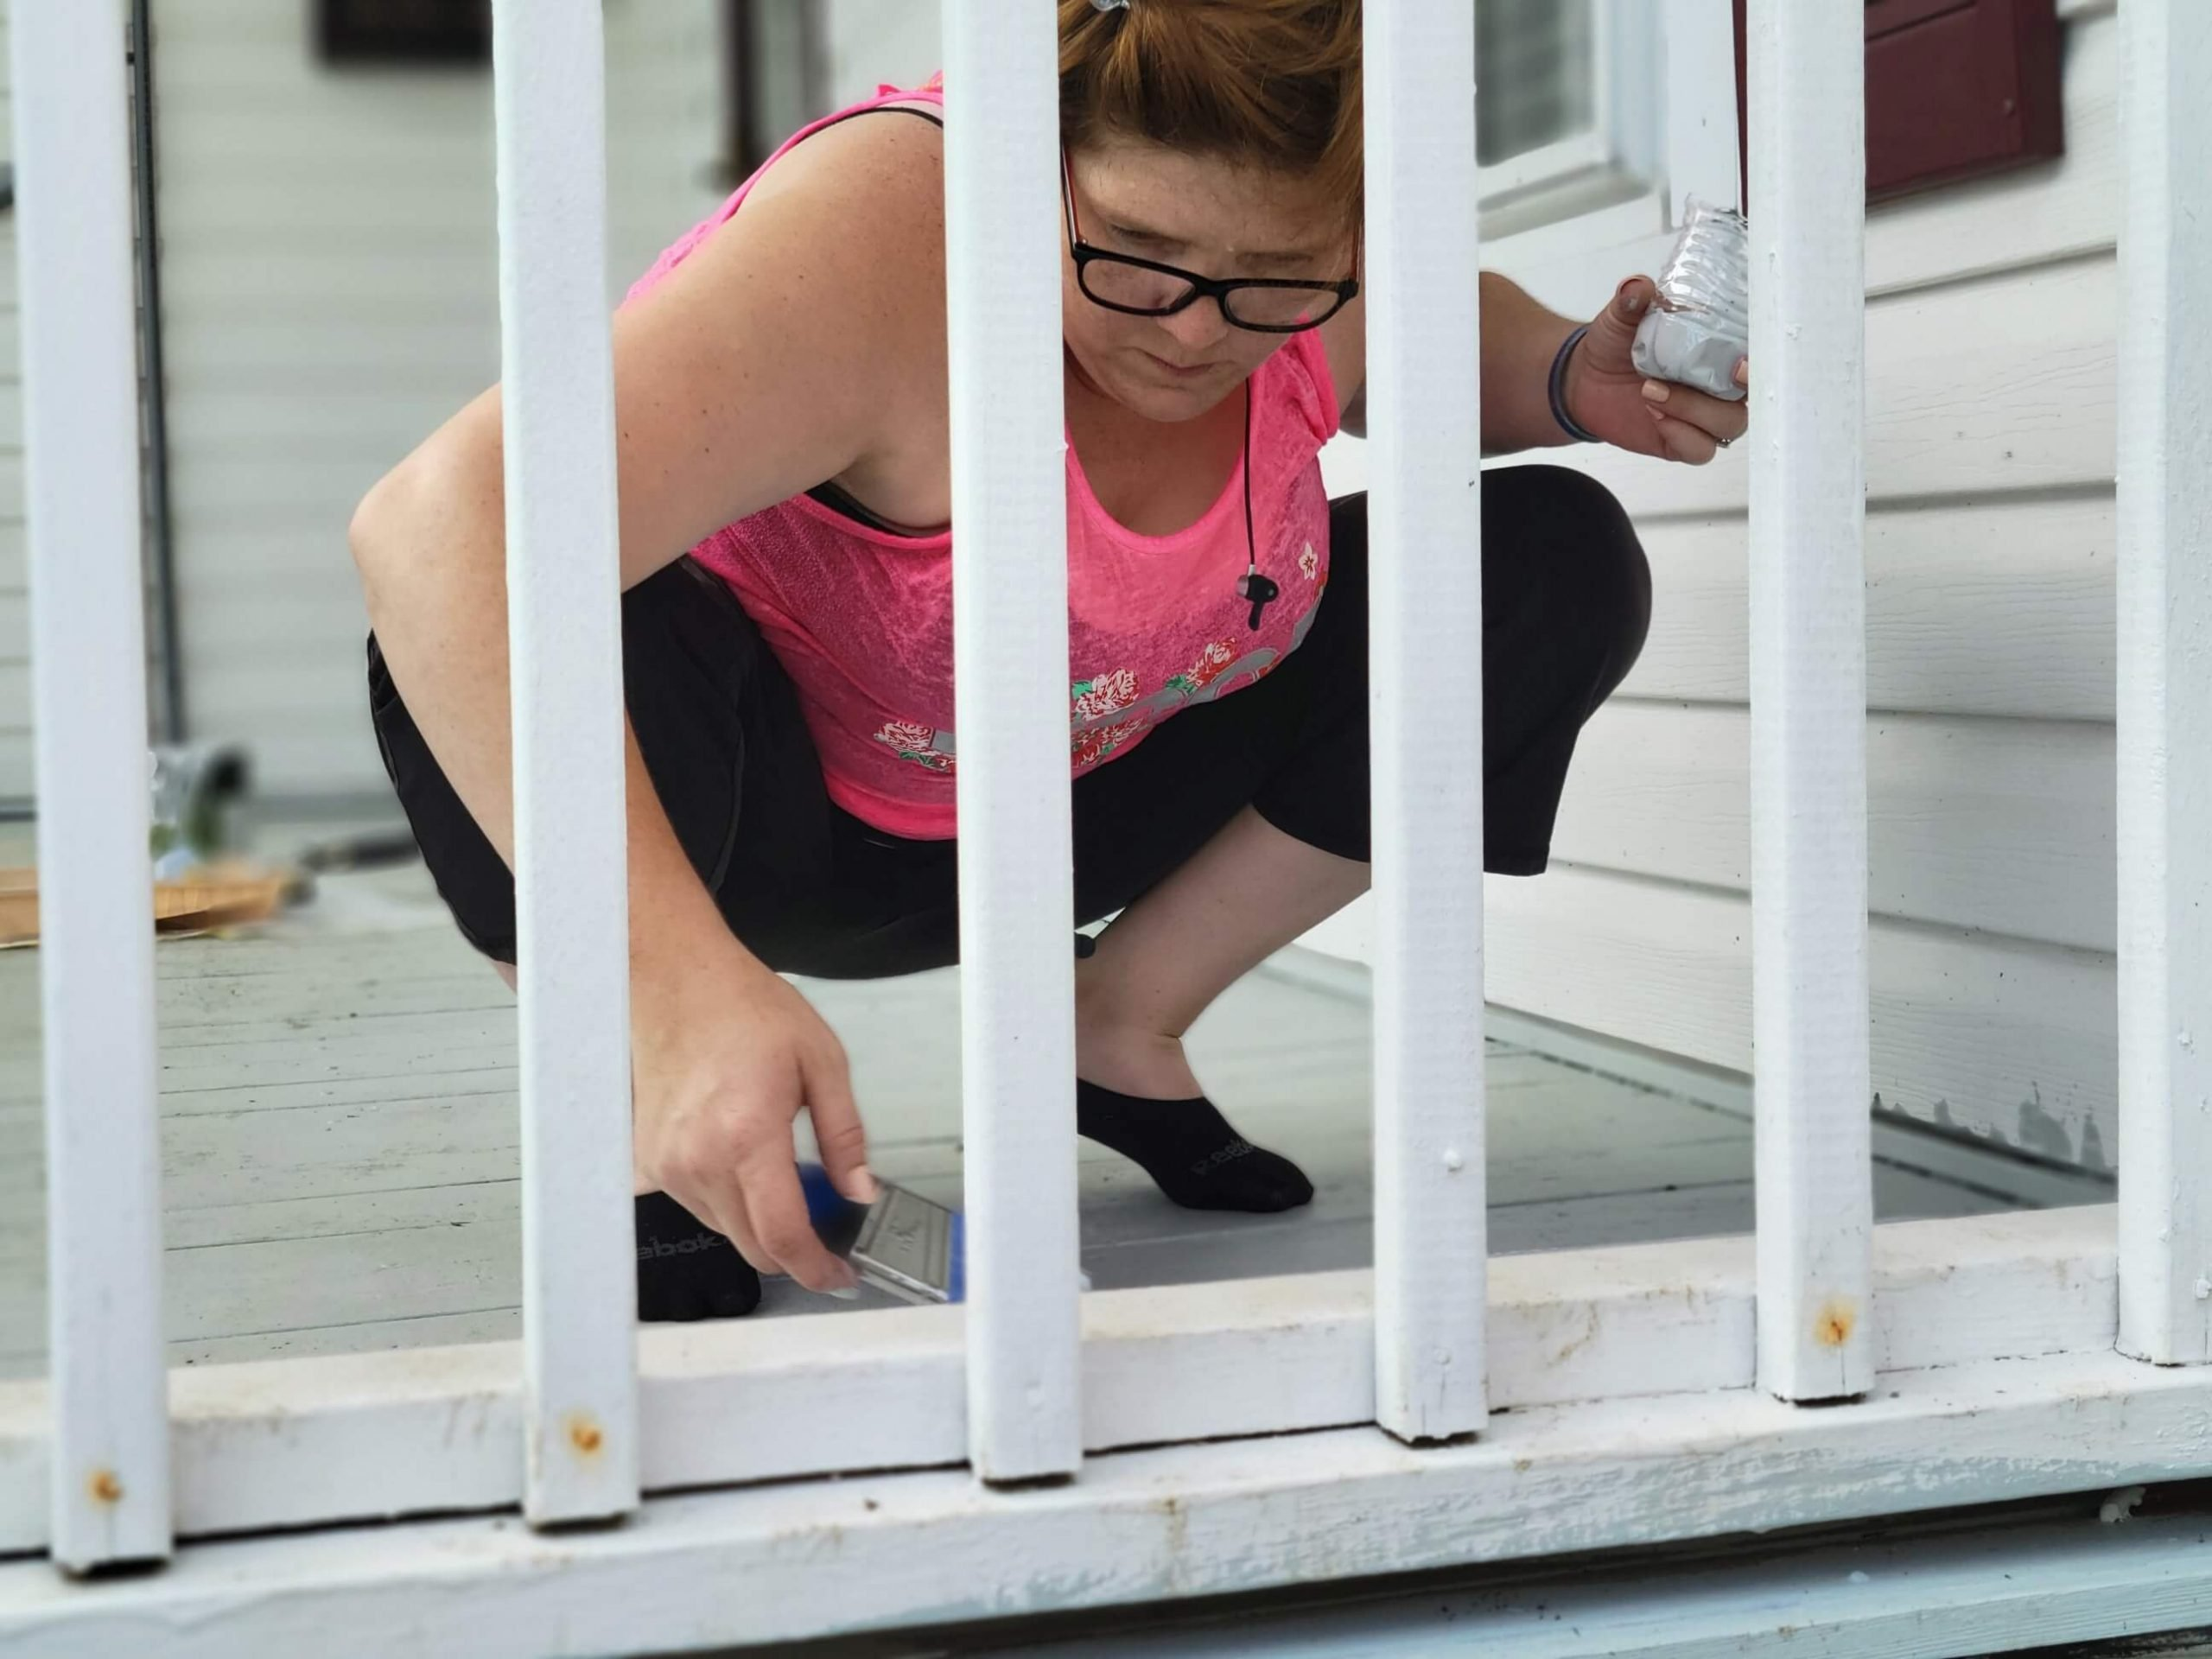 Andrea paints a porch for a family in need of home repairs.